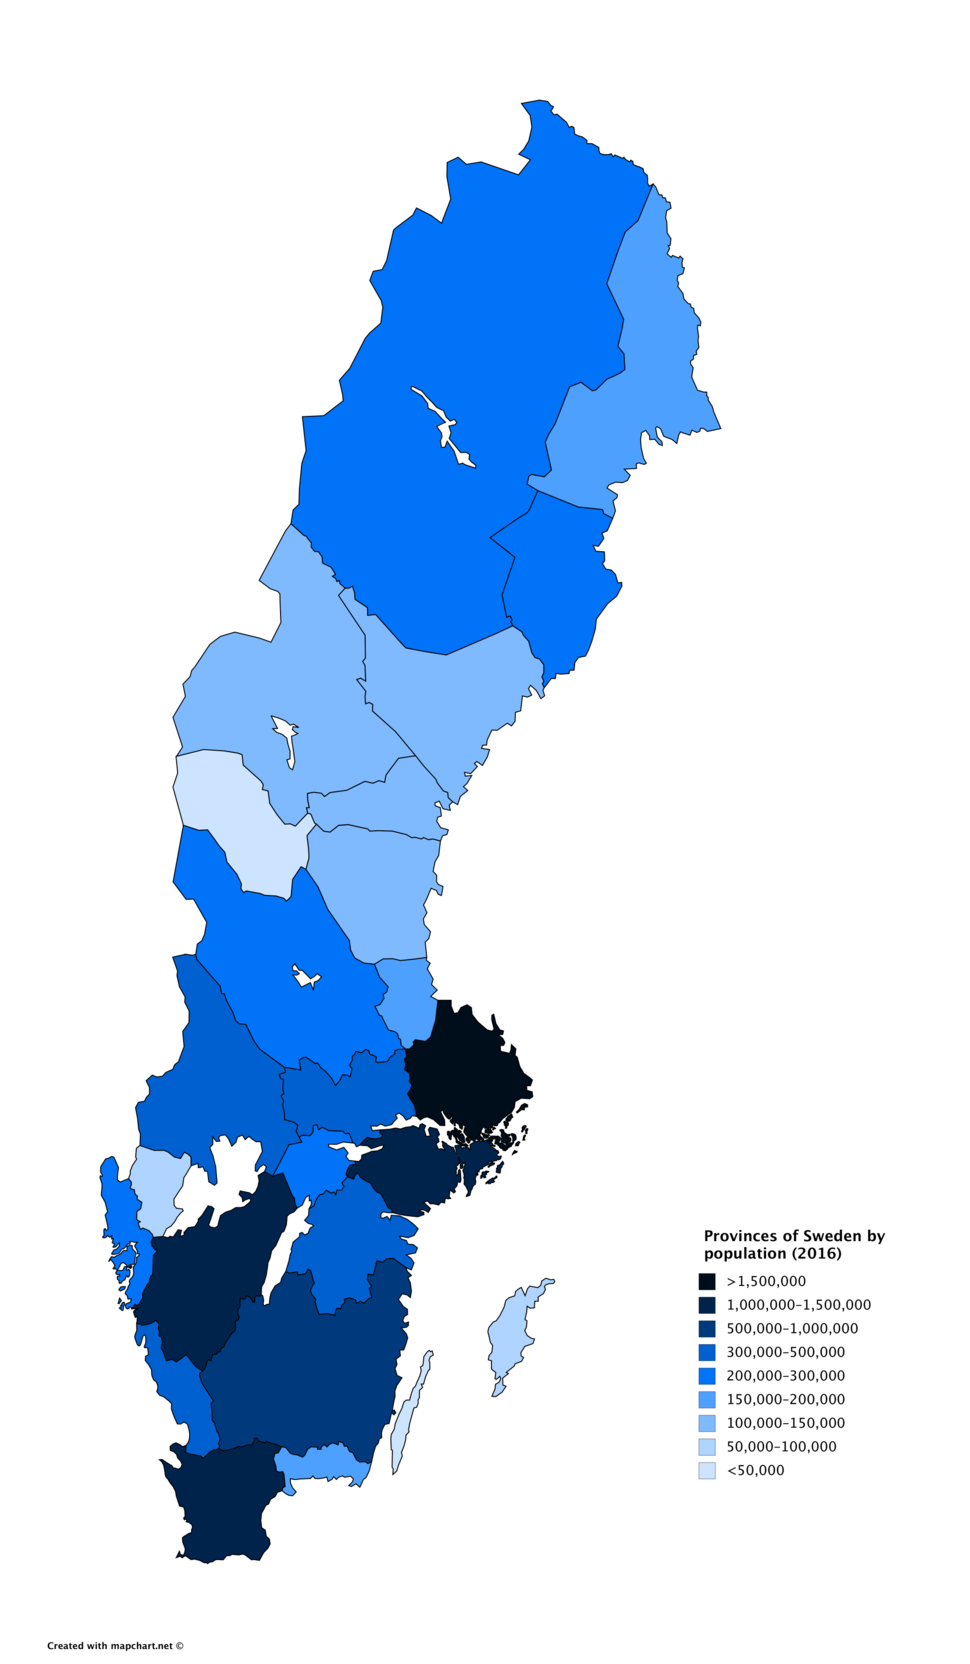 Provinces of Sweden by population (2016)